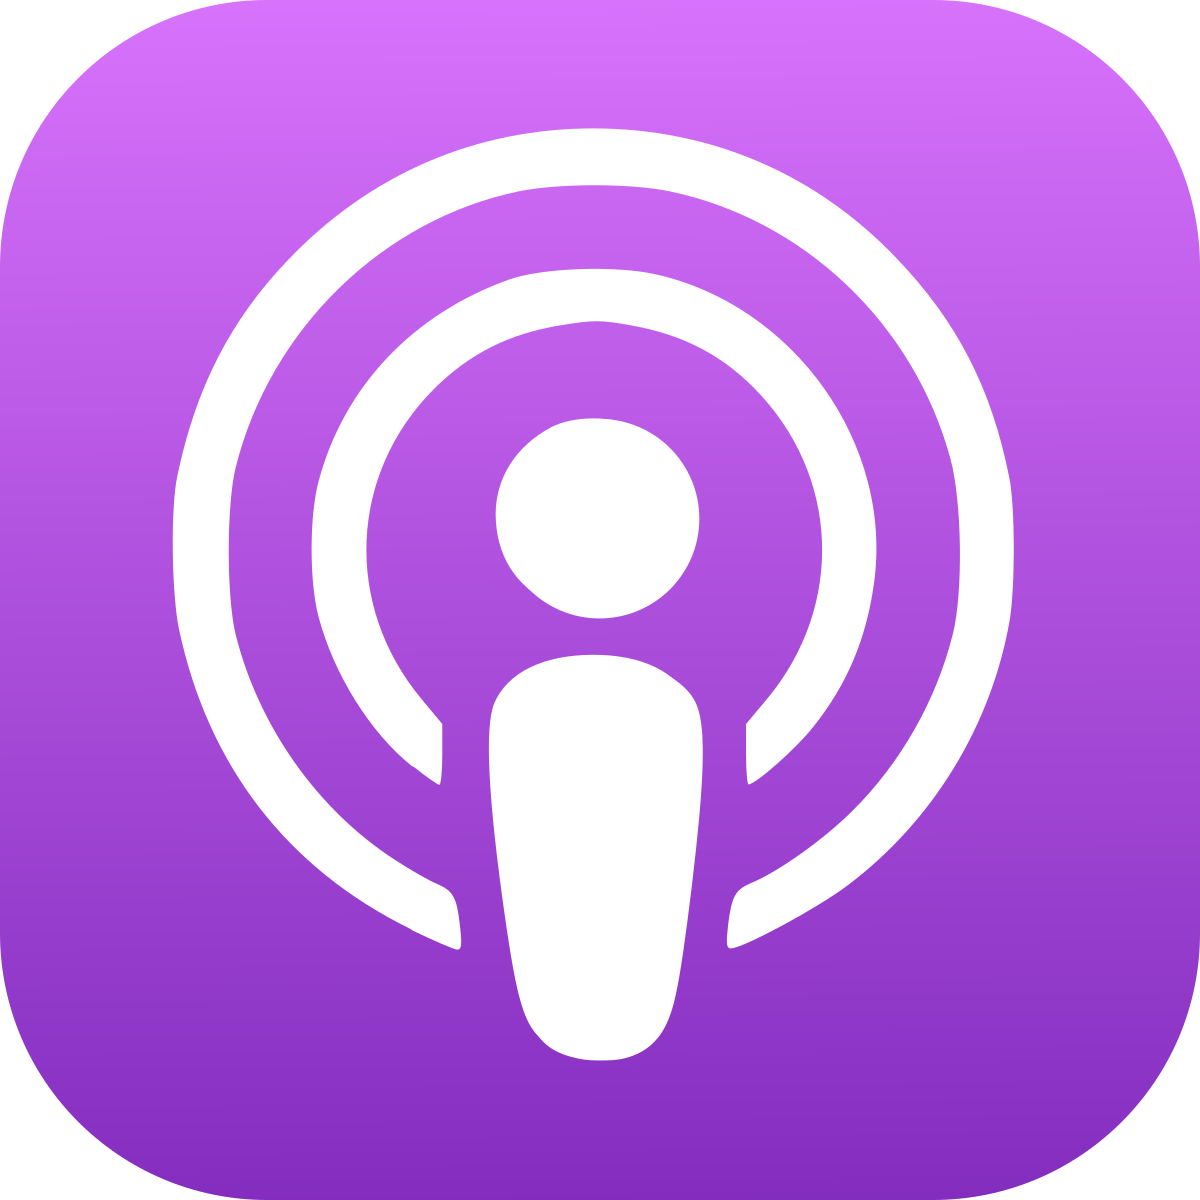 TechEd Podcast on Apple Podcasts